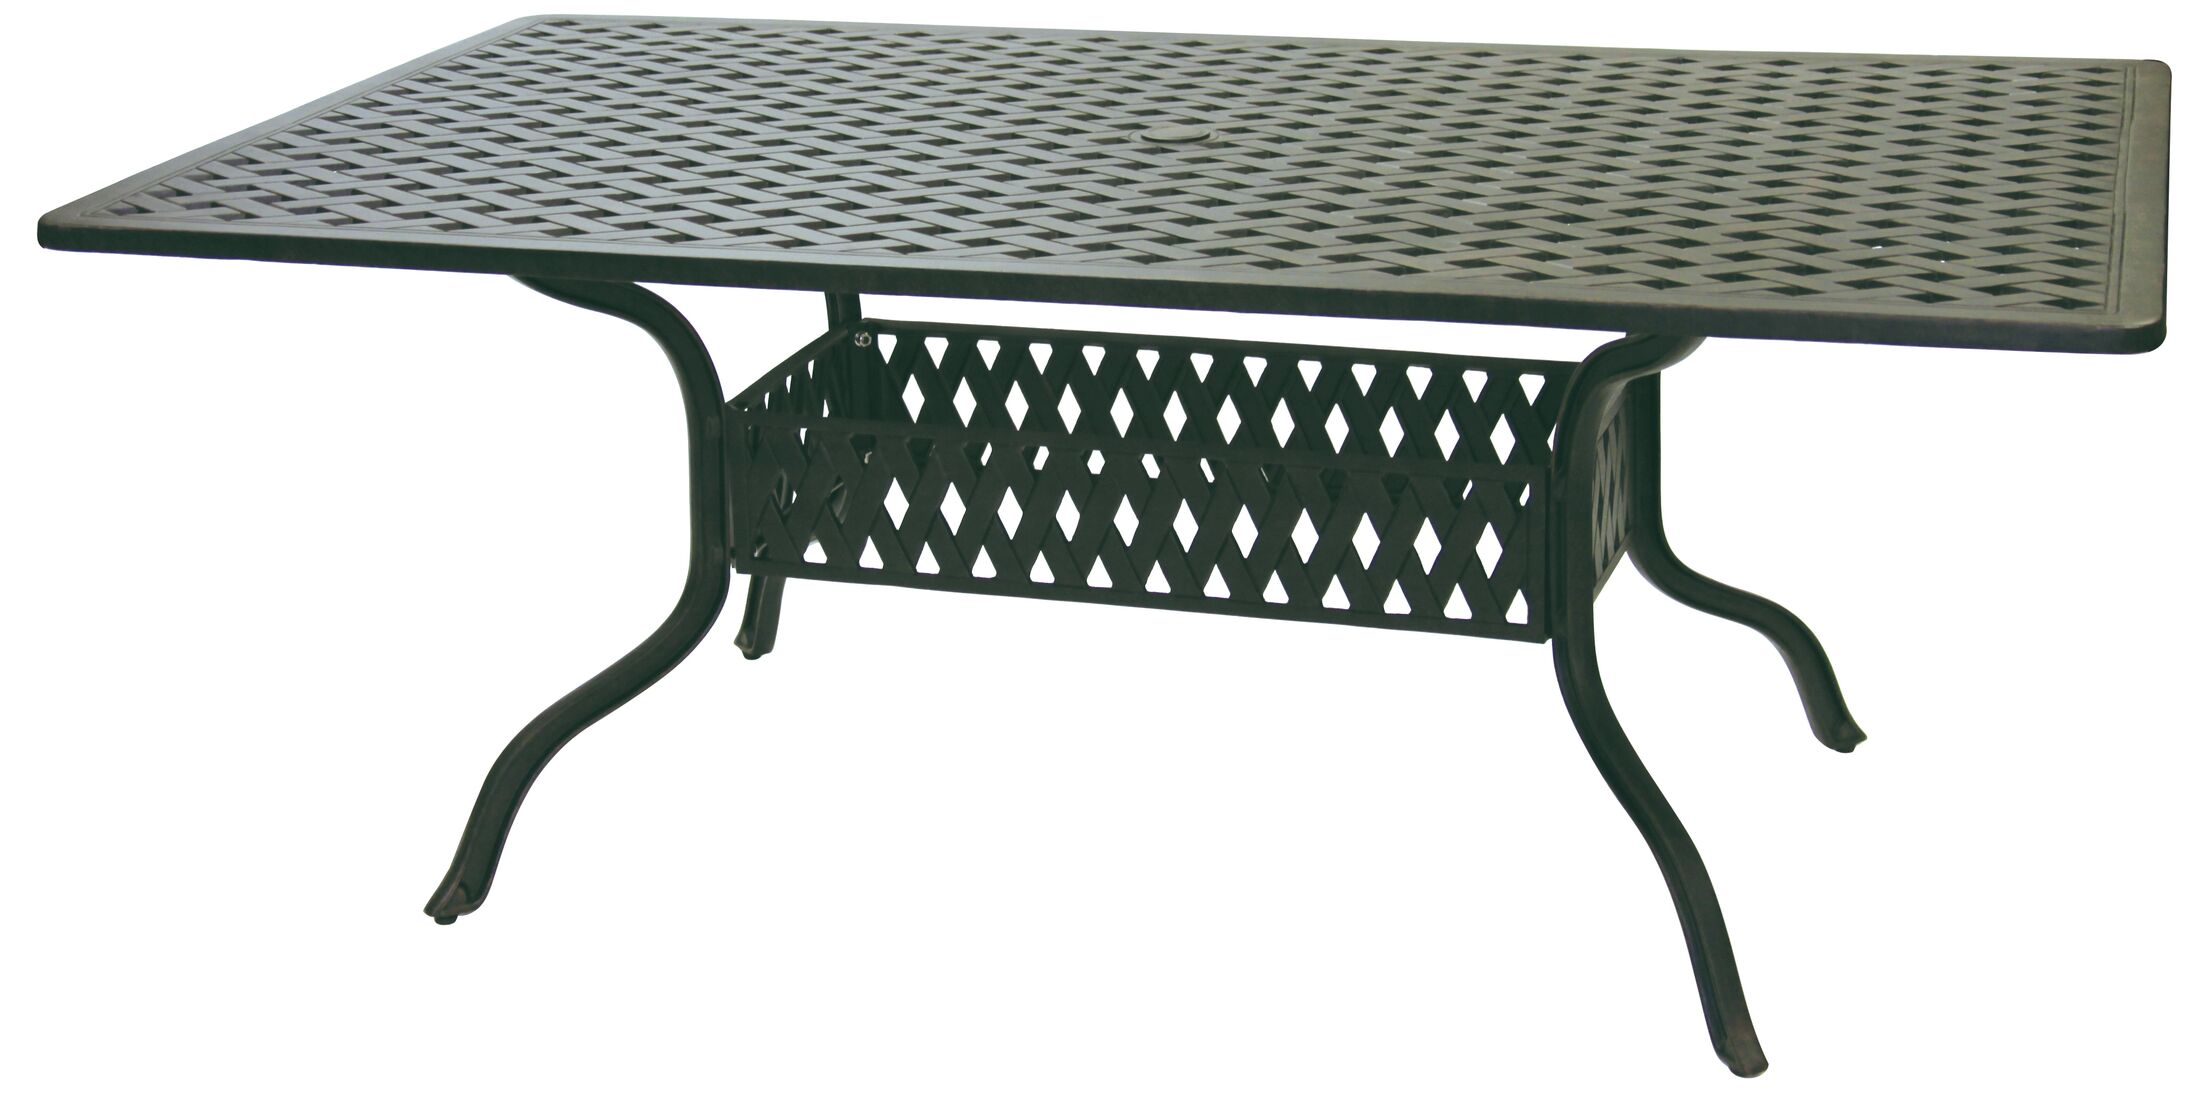 Mckinney Traditional Rectangle Dining Table Table Size: 92